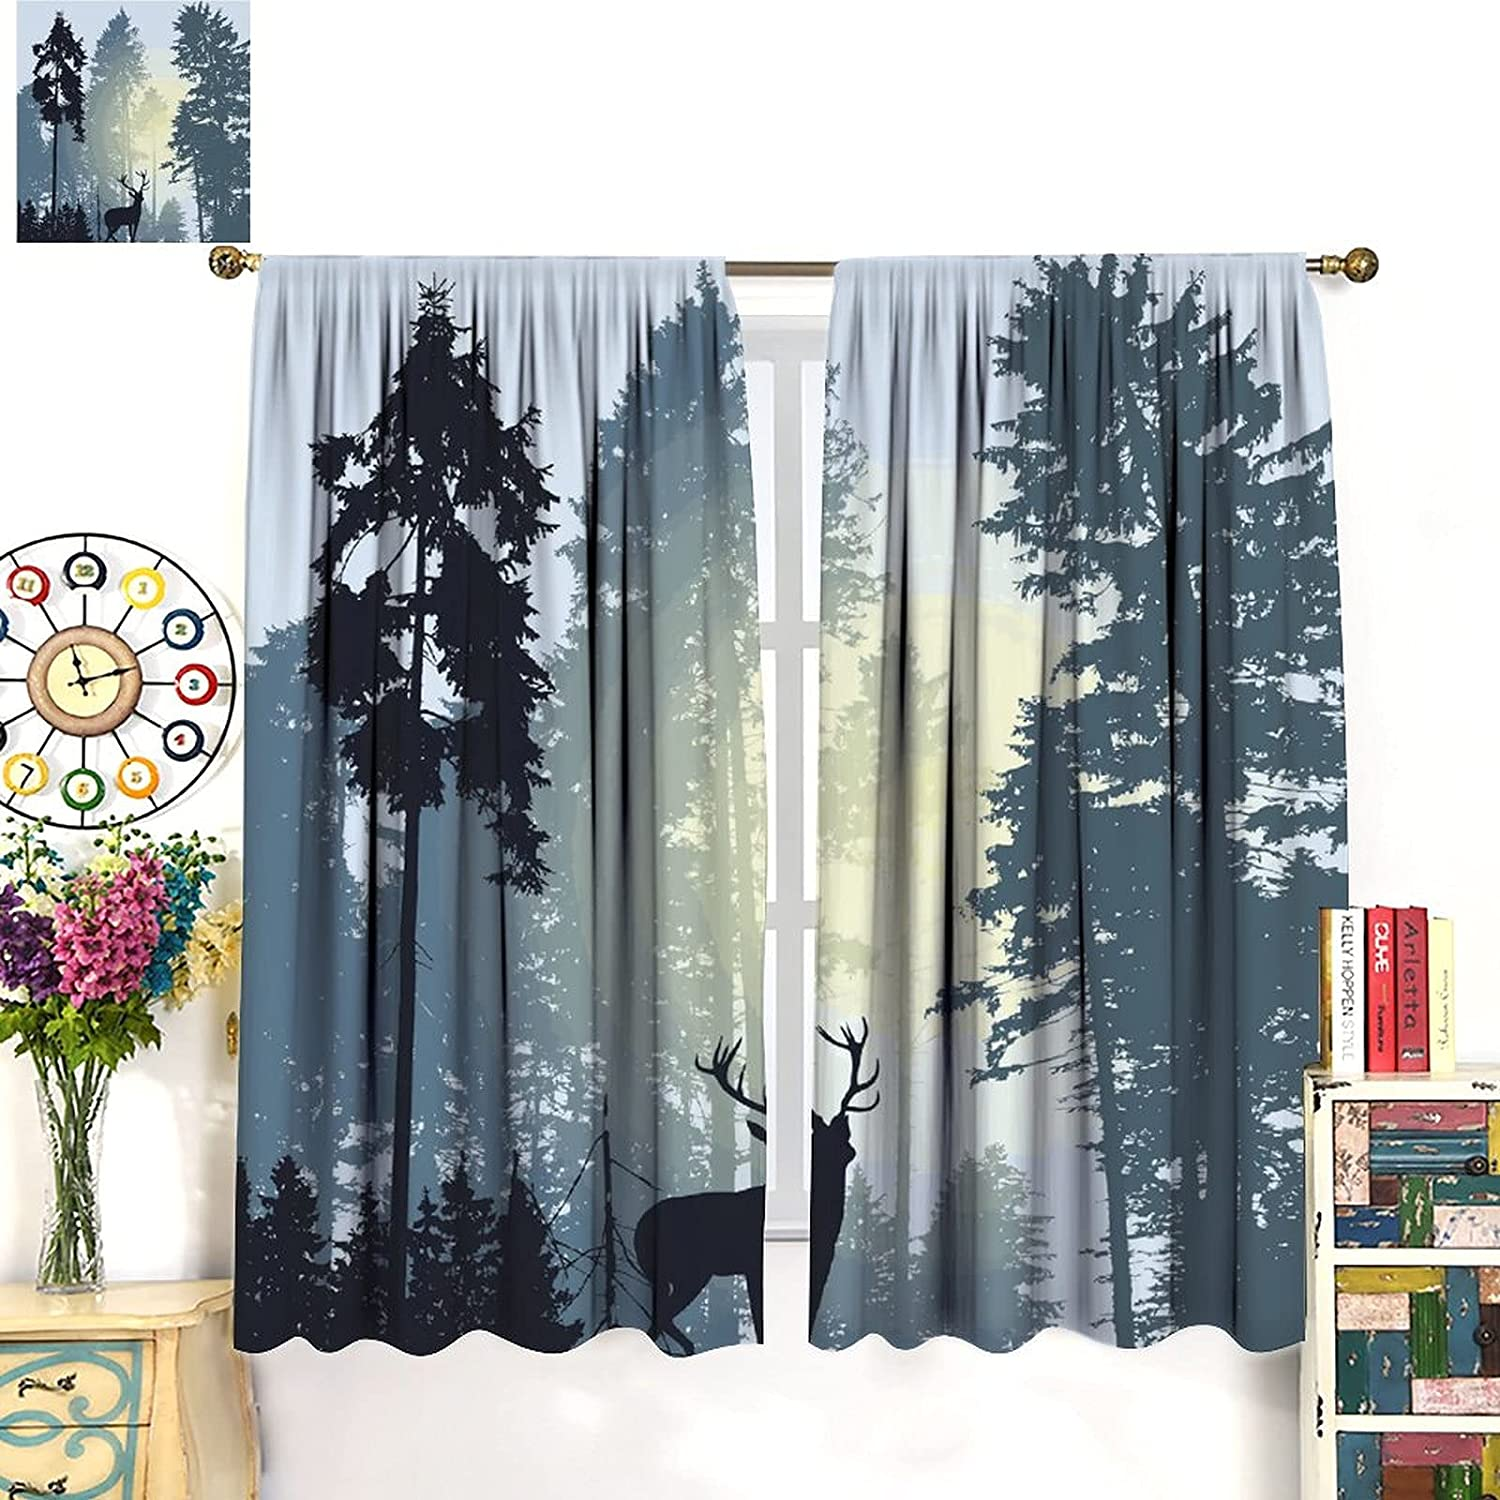 Decor Curtains Vintage Rustic Max 80% OFF New color 21 85x85inch Forest Moose